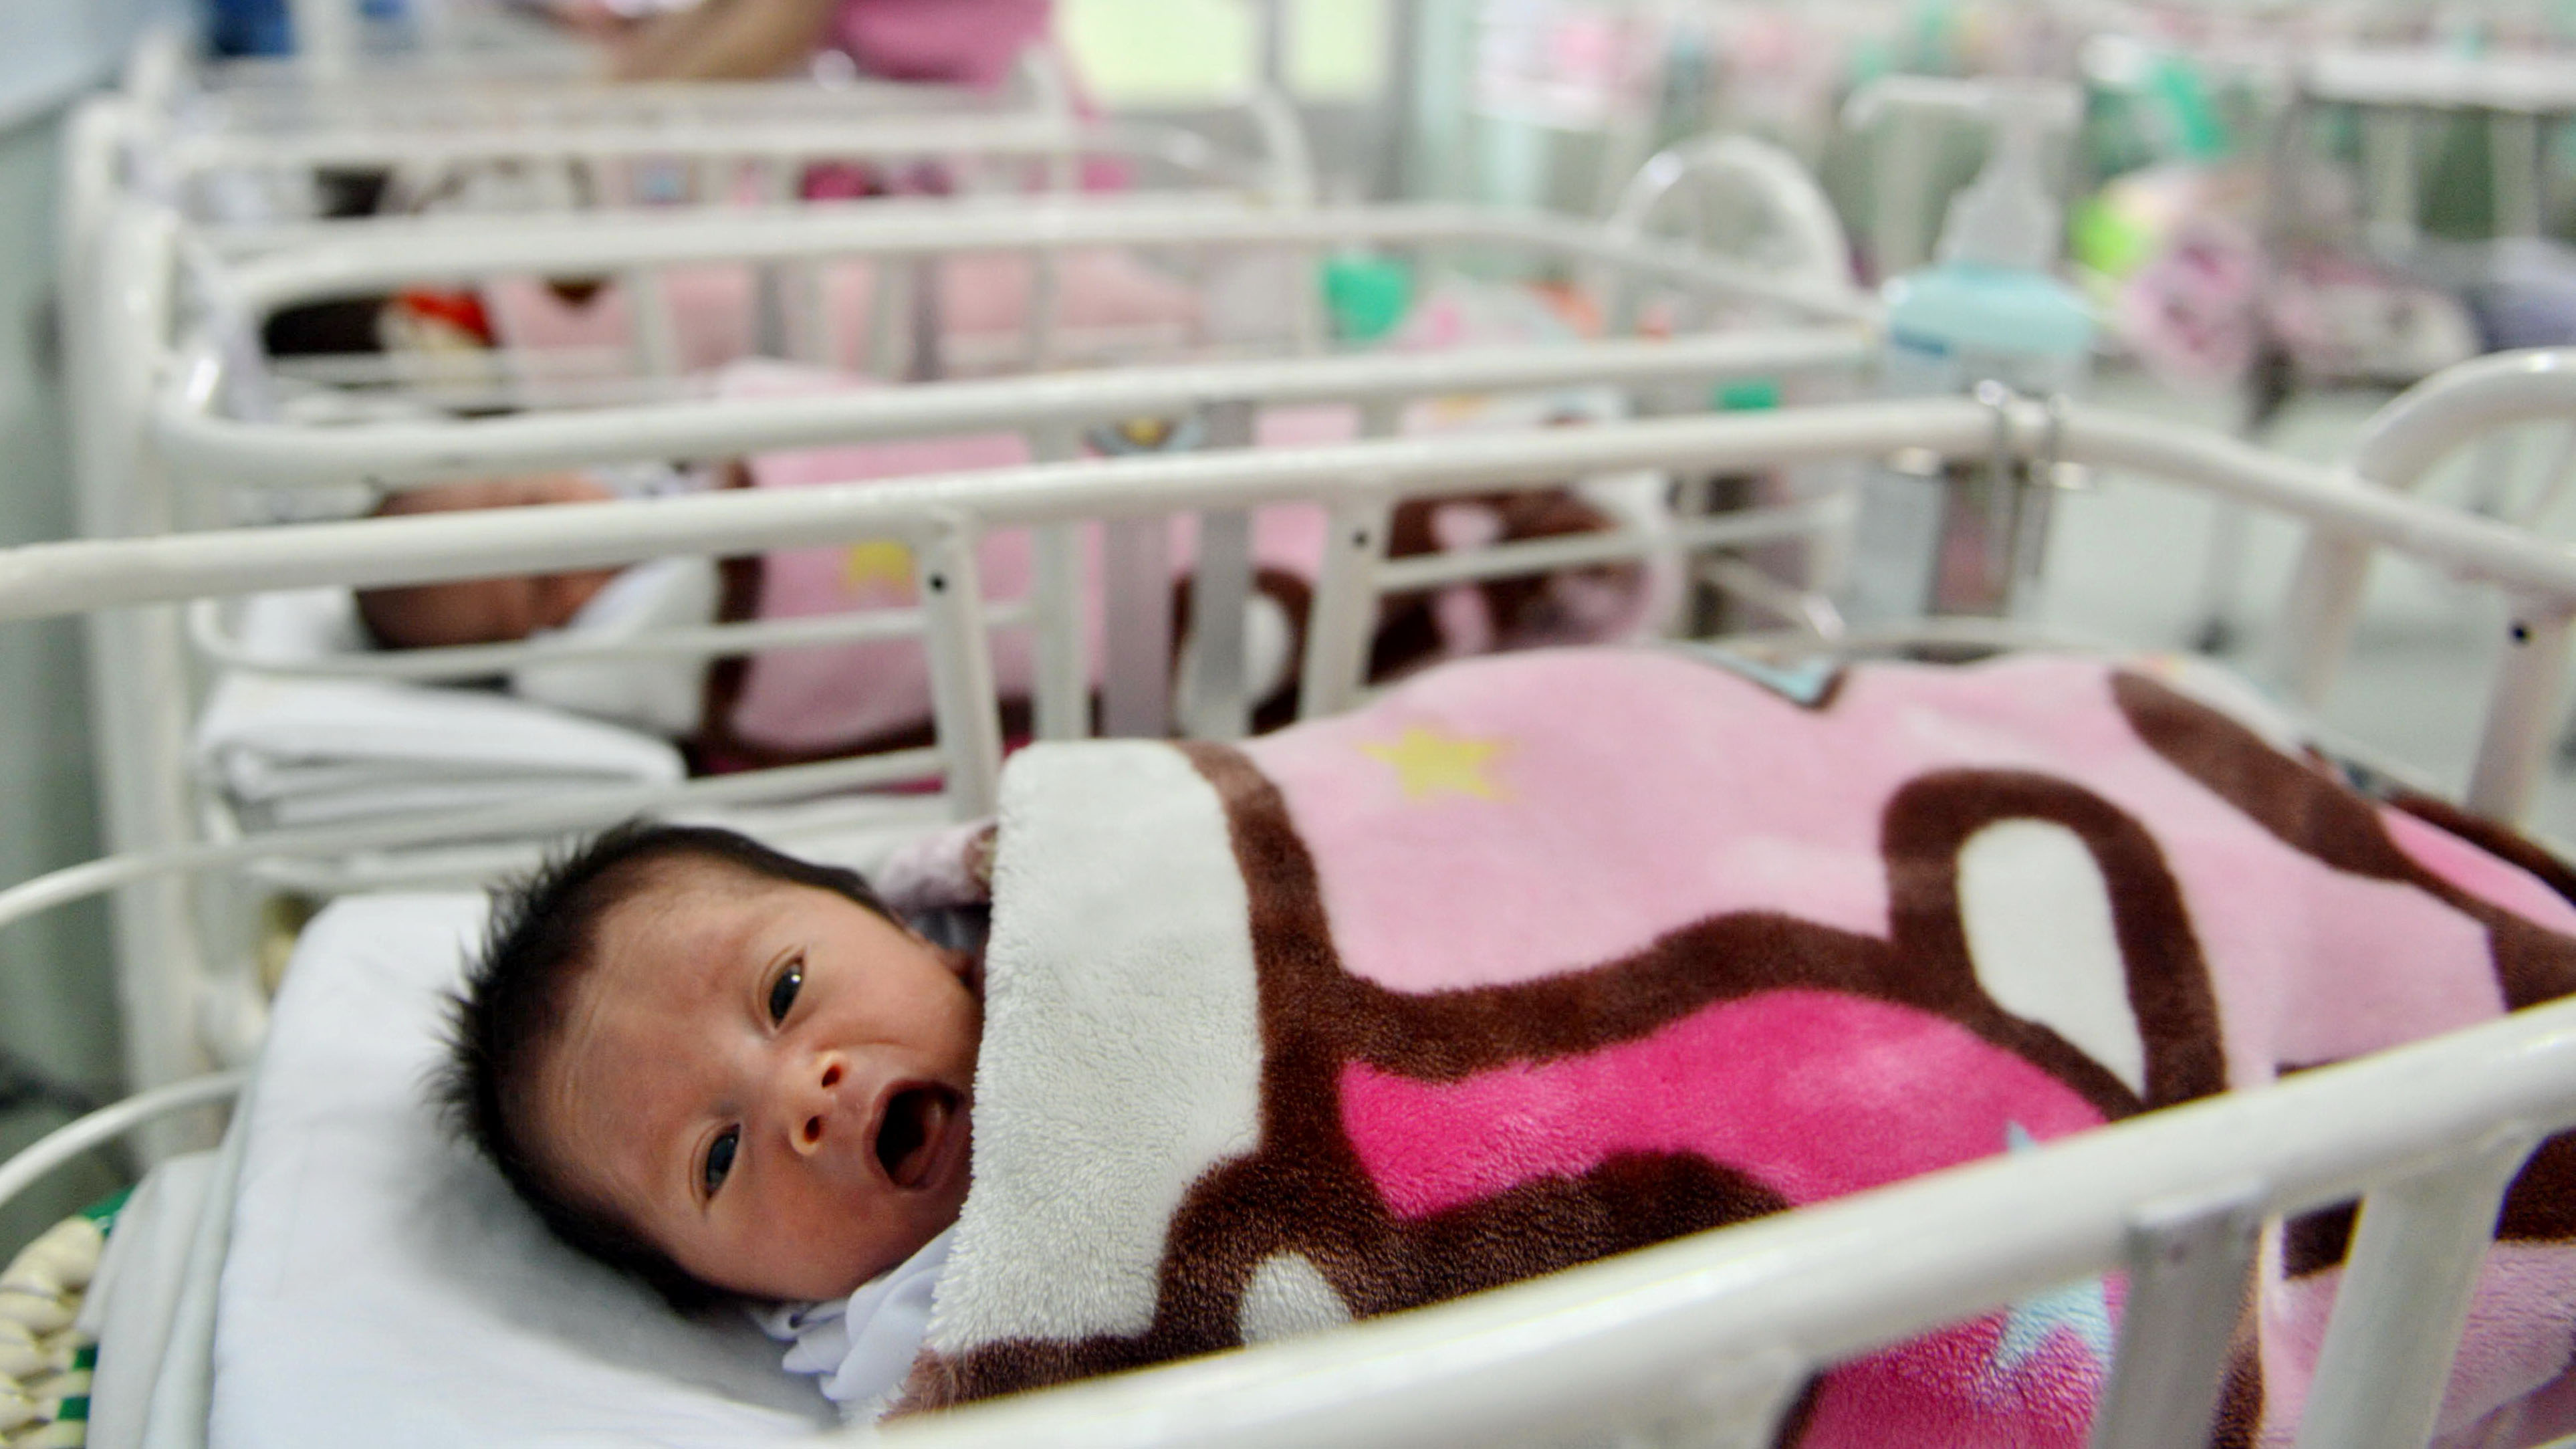 Vietnam scraps planned parenthood in revised population policy